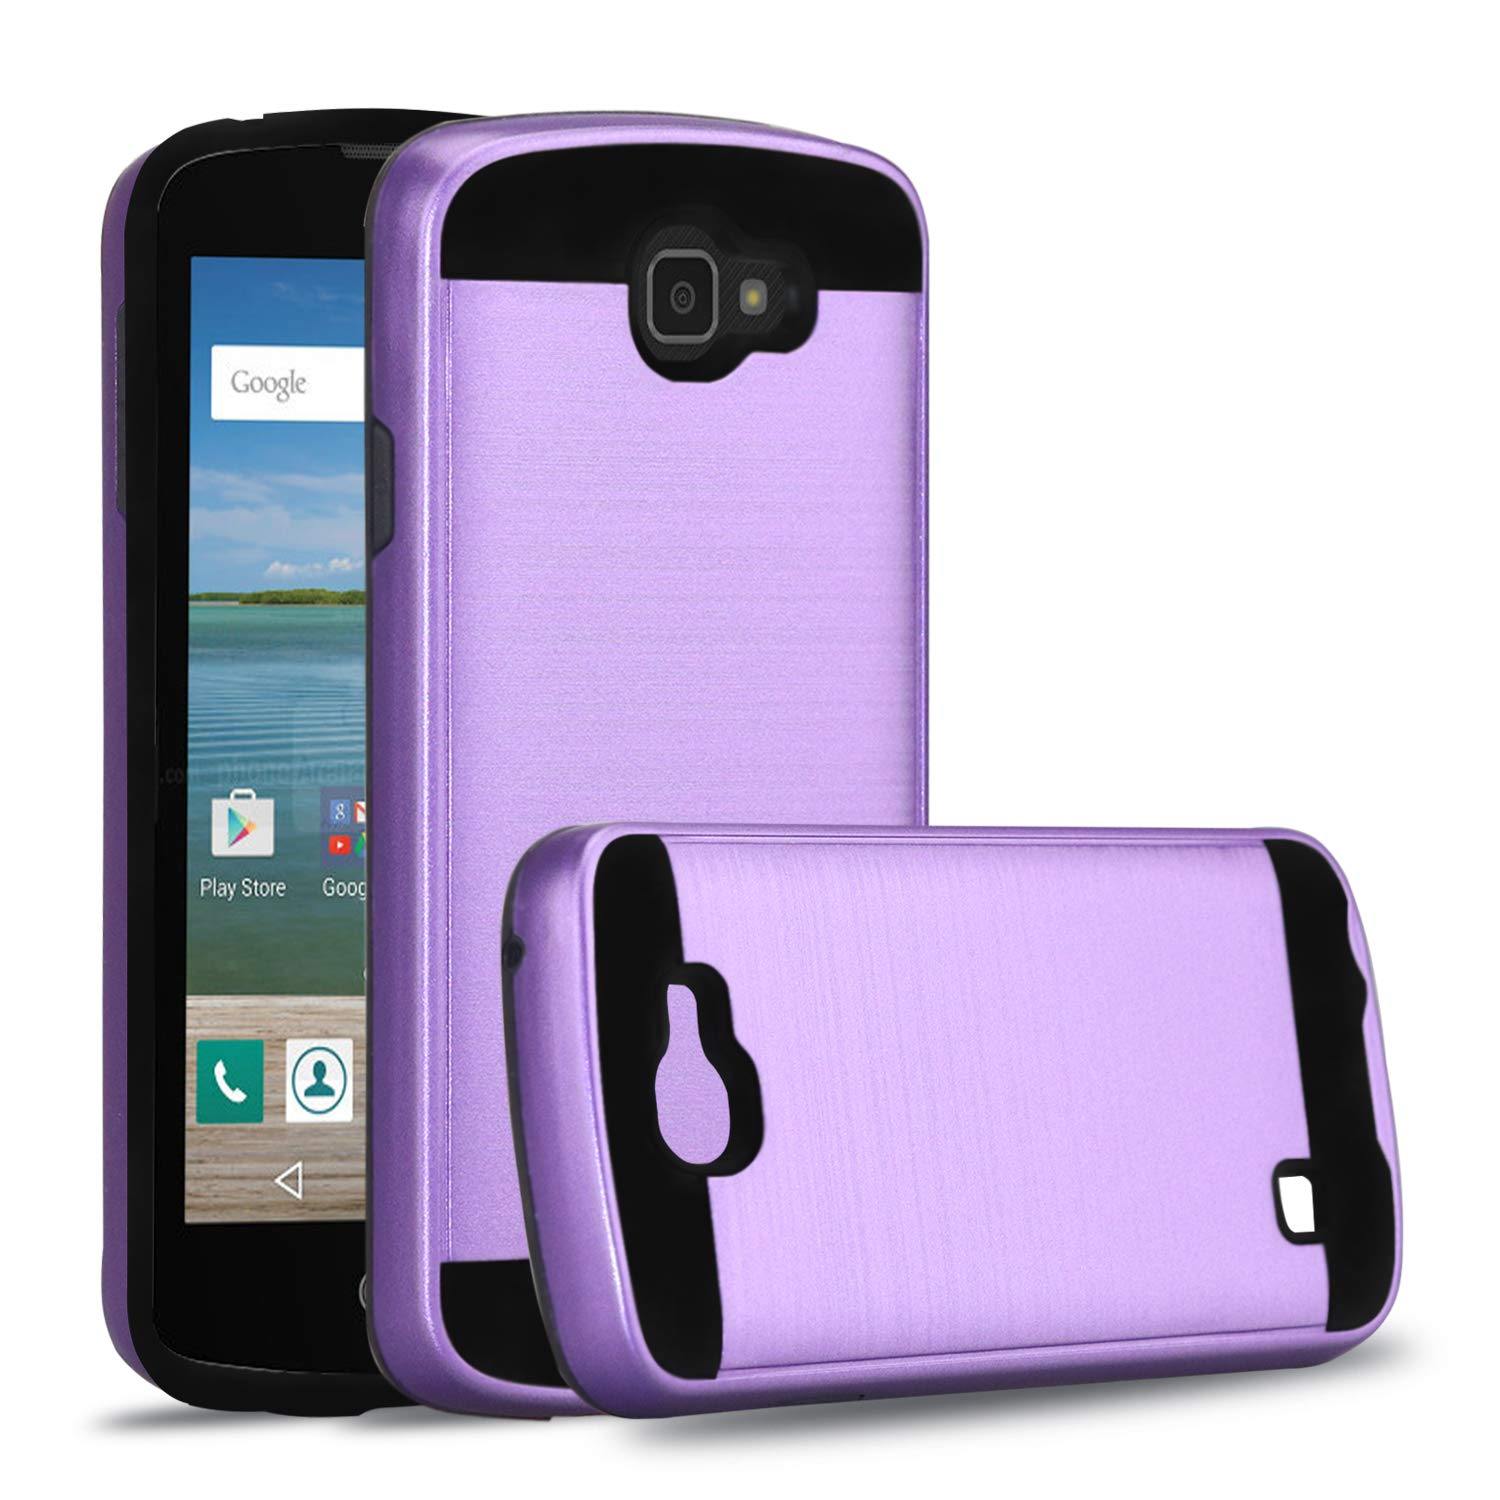 LG Optimus Zone 3 case,LG VS425PP case,LG Spree case,LG K4 2016 case,LG Rebel LTE Case,Ayoo [Drop Protection] Brushed Texture Full-Body Shockproof Protective Cover Design for LG K4-ZS Purple